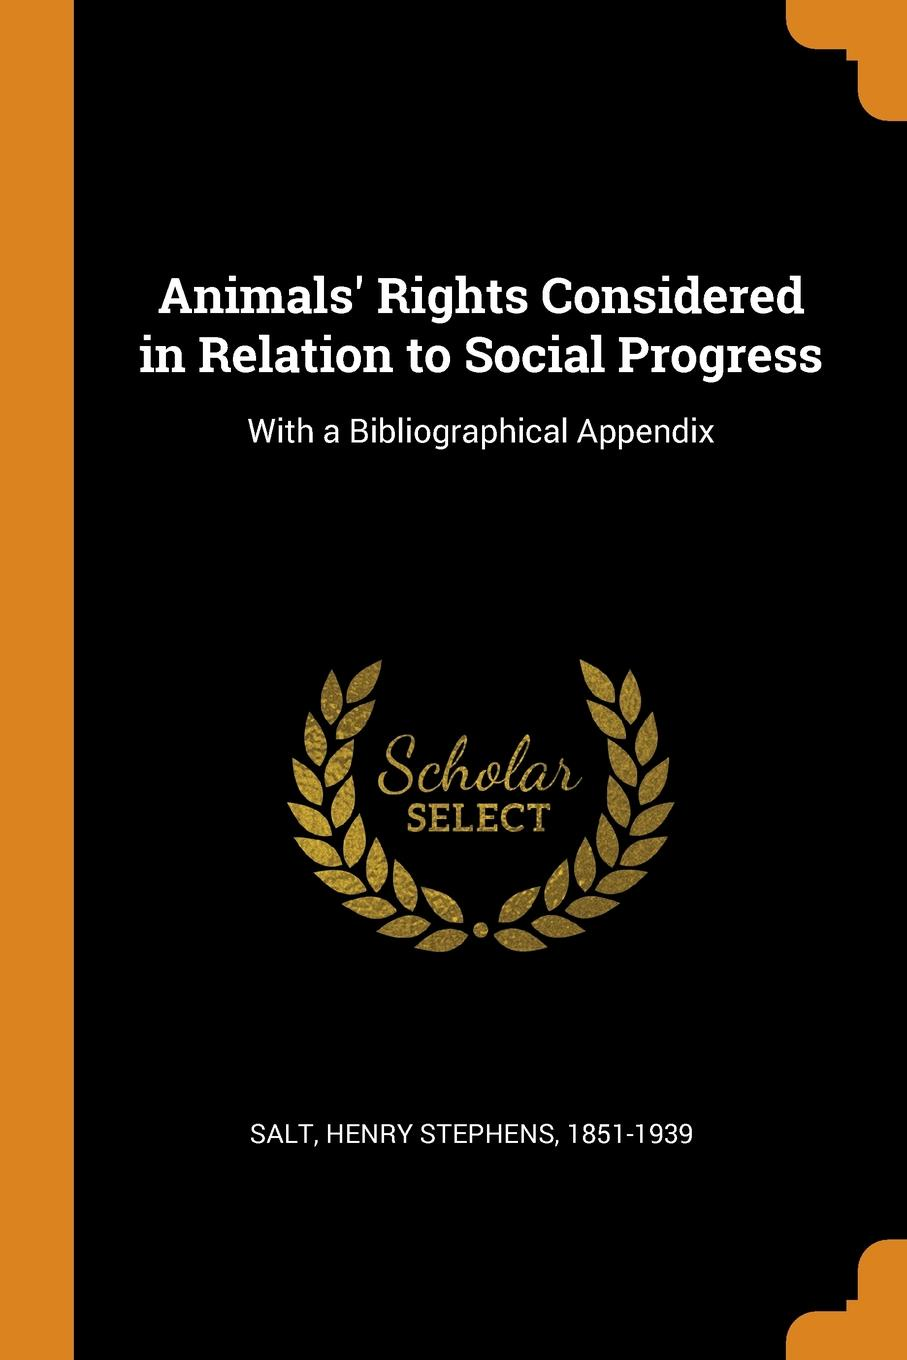 Animals Rights Considered in Relation to Social Progress. With a Bibliographical Appendix